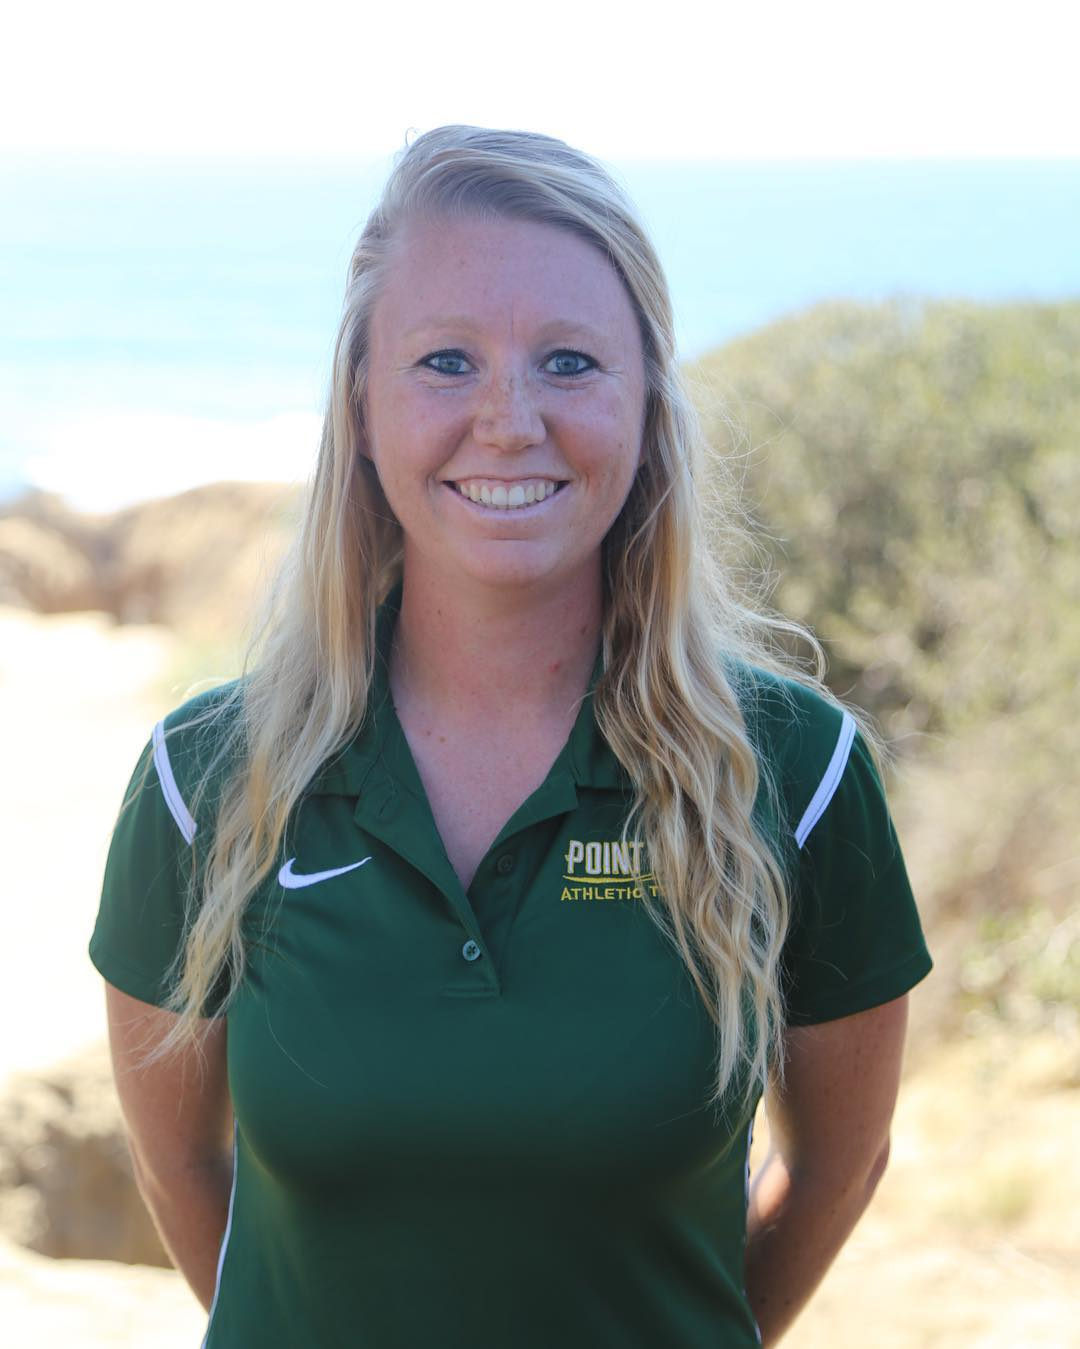 Pami Young - Pami is an athletic trainer at Point Loma Nazarene University. She loves all things sports and competition, is passionate about the development and formation in the lives of her college student athletes, and nerds out on the Enneagram. When she's not on the sidelines saving lives one ankle tape at a time, she's probably on a walk & talk with a friend, drinking chai, or trying to one up you on a movie quote.